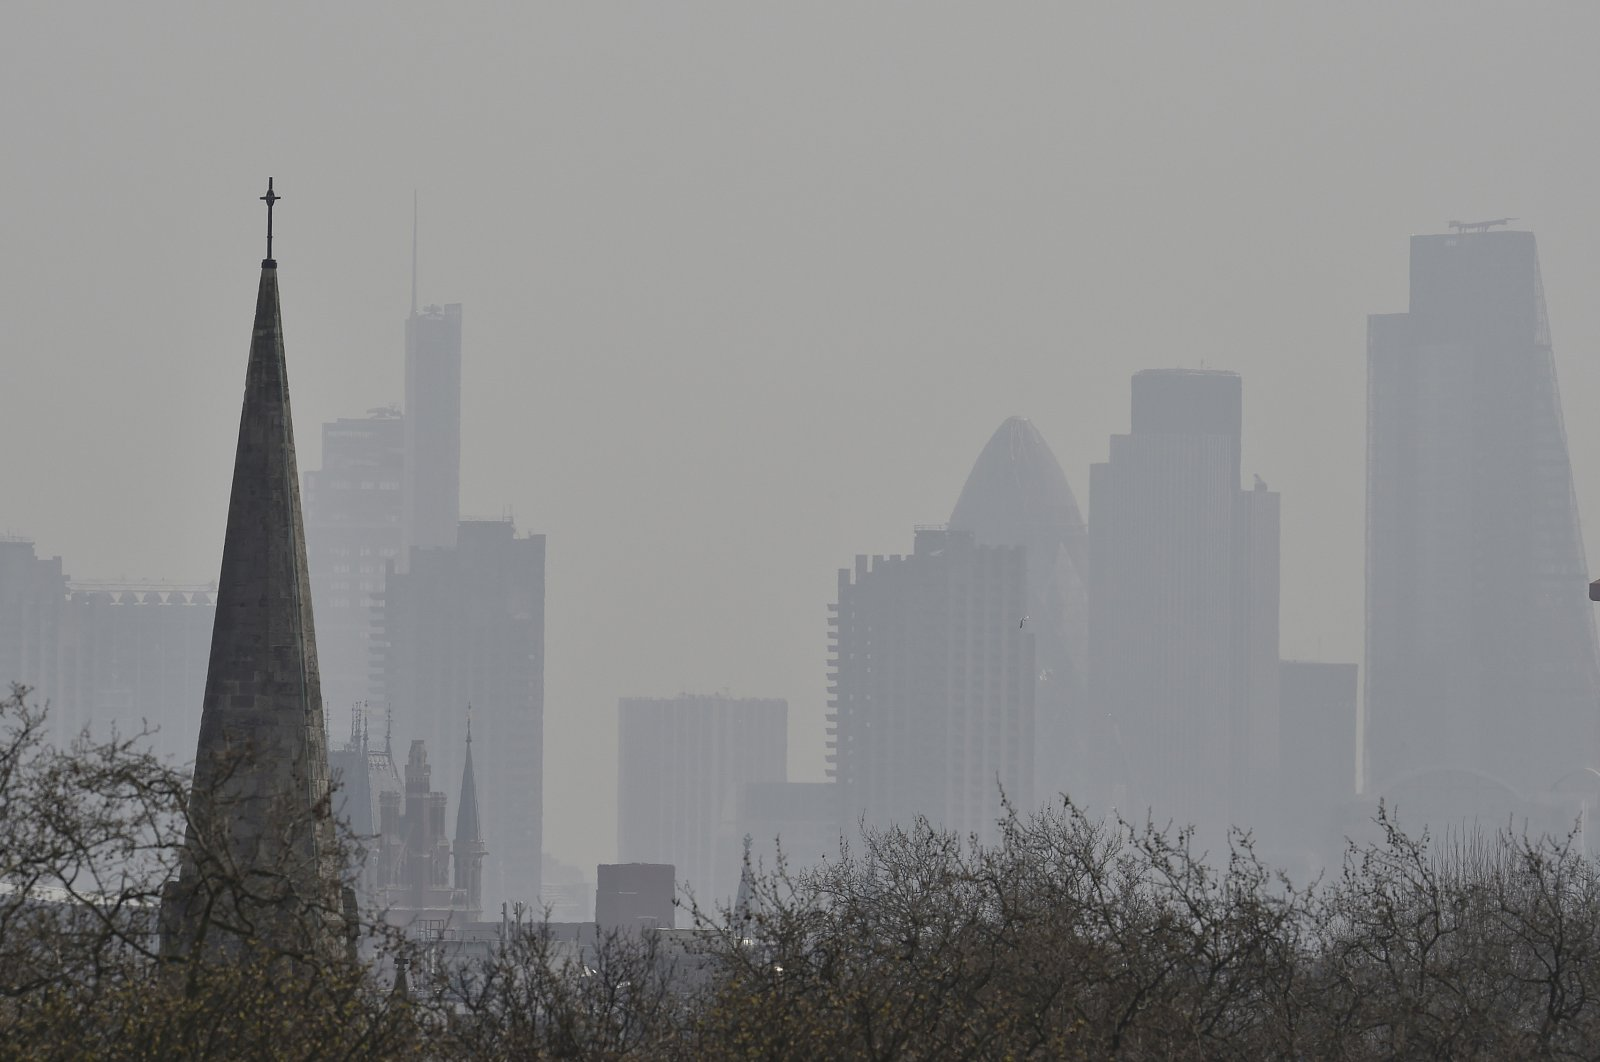 The City of London's financial district is seen from Primrose Hill as high air pollution obscures the skyline over London, April 10, 2015. (Reuters Photo)